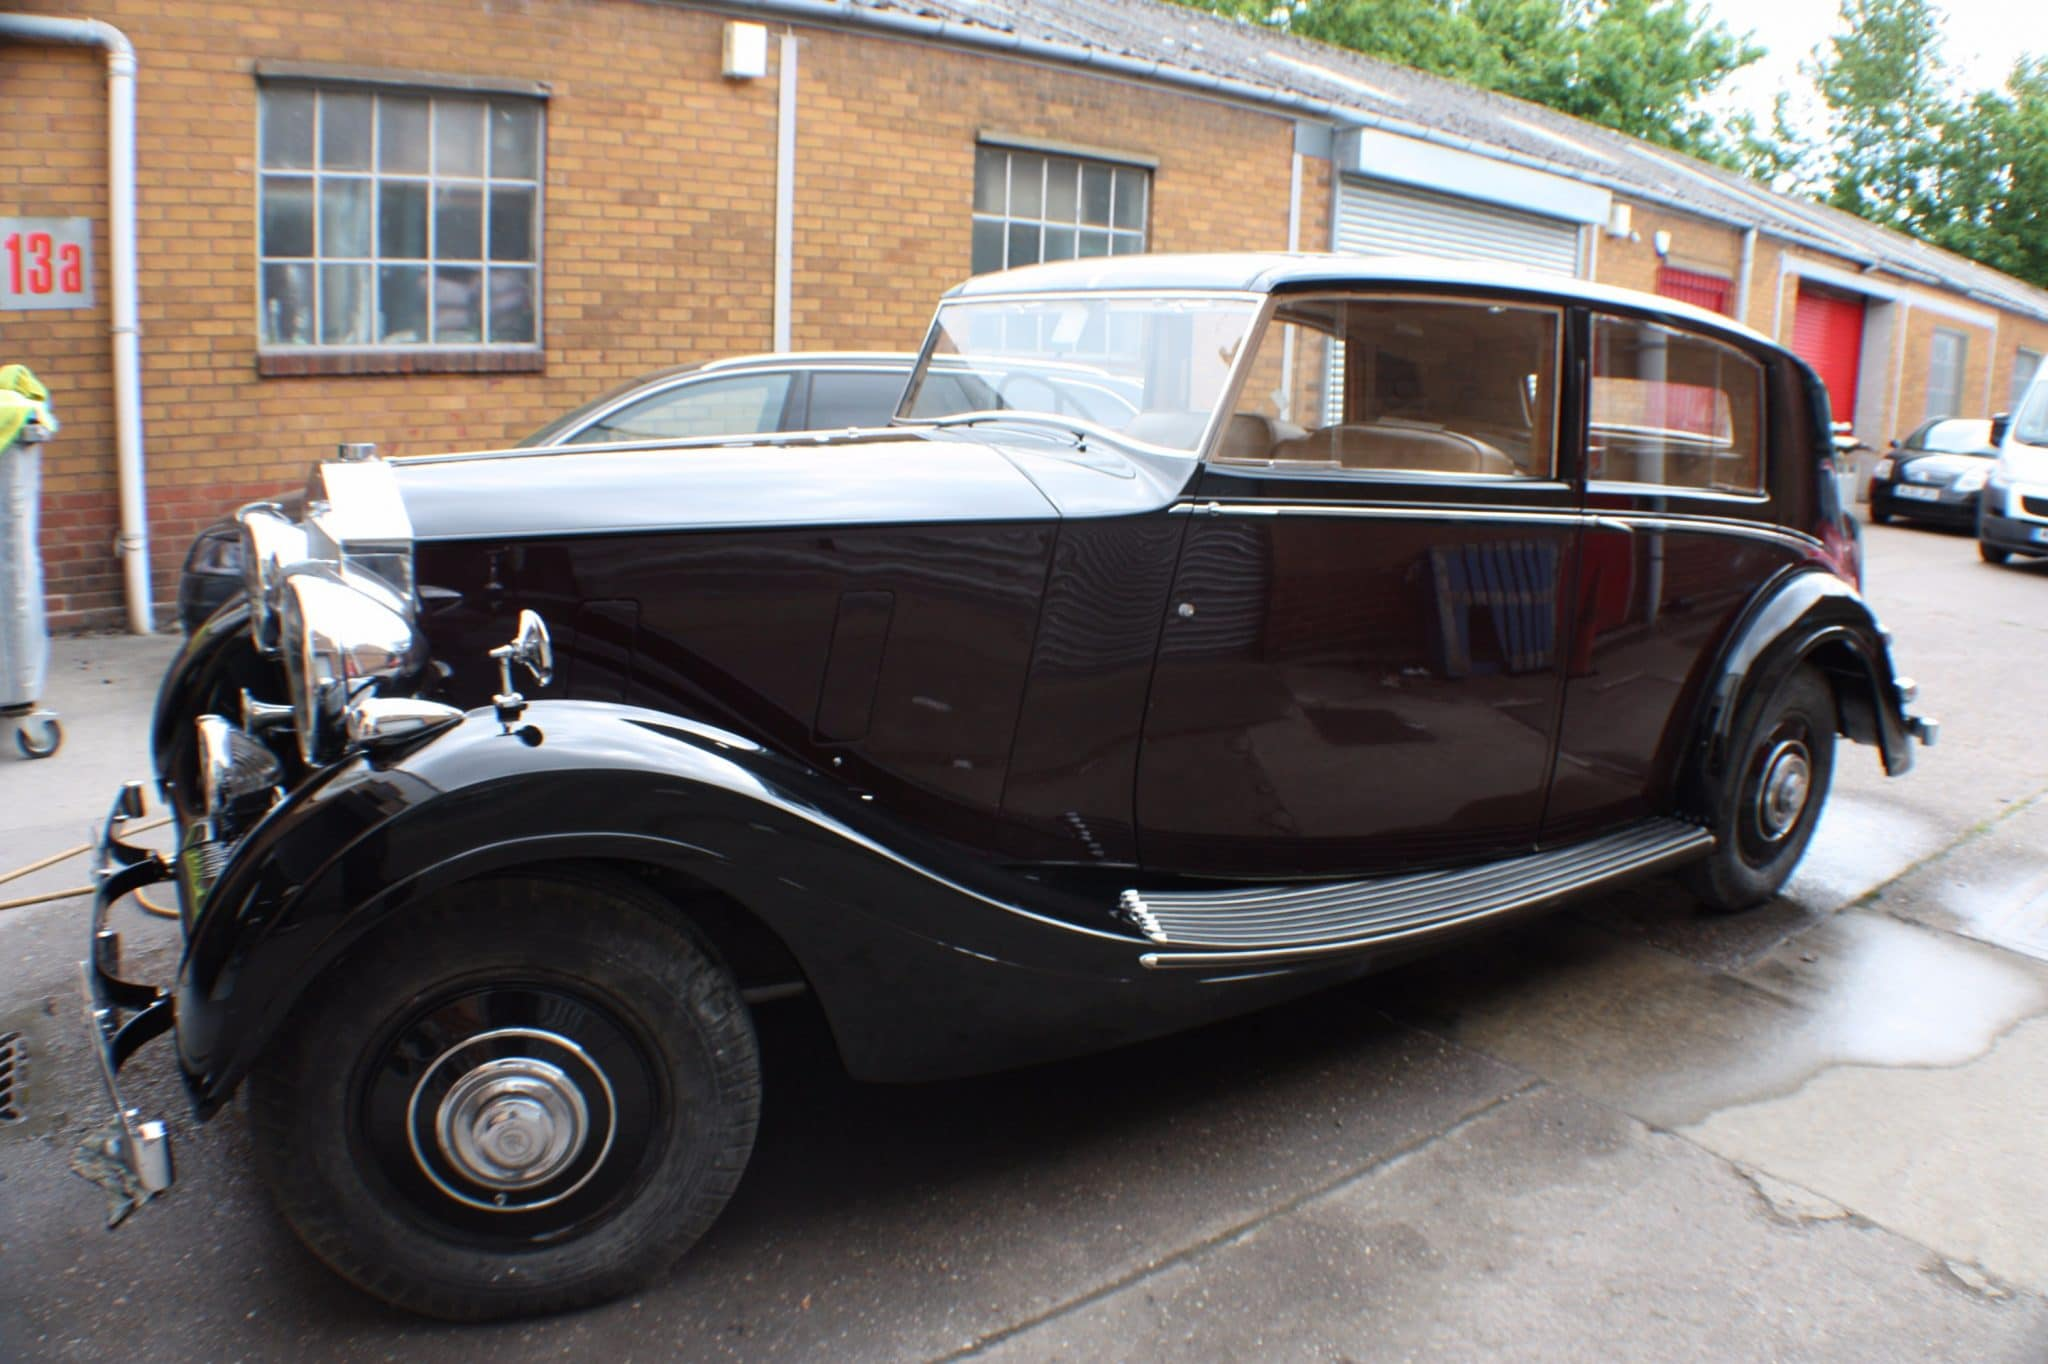 Rolls Royce finished product - after restoration